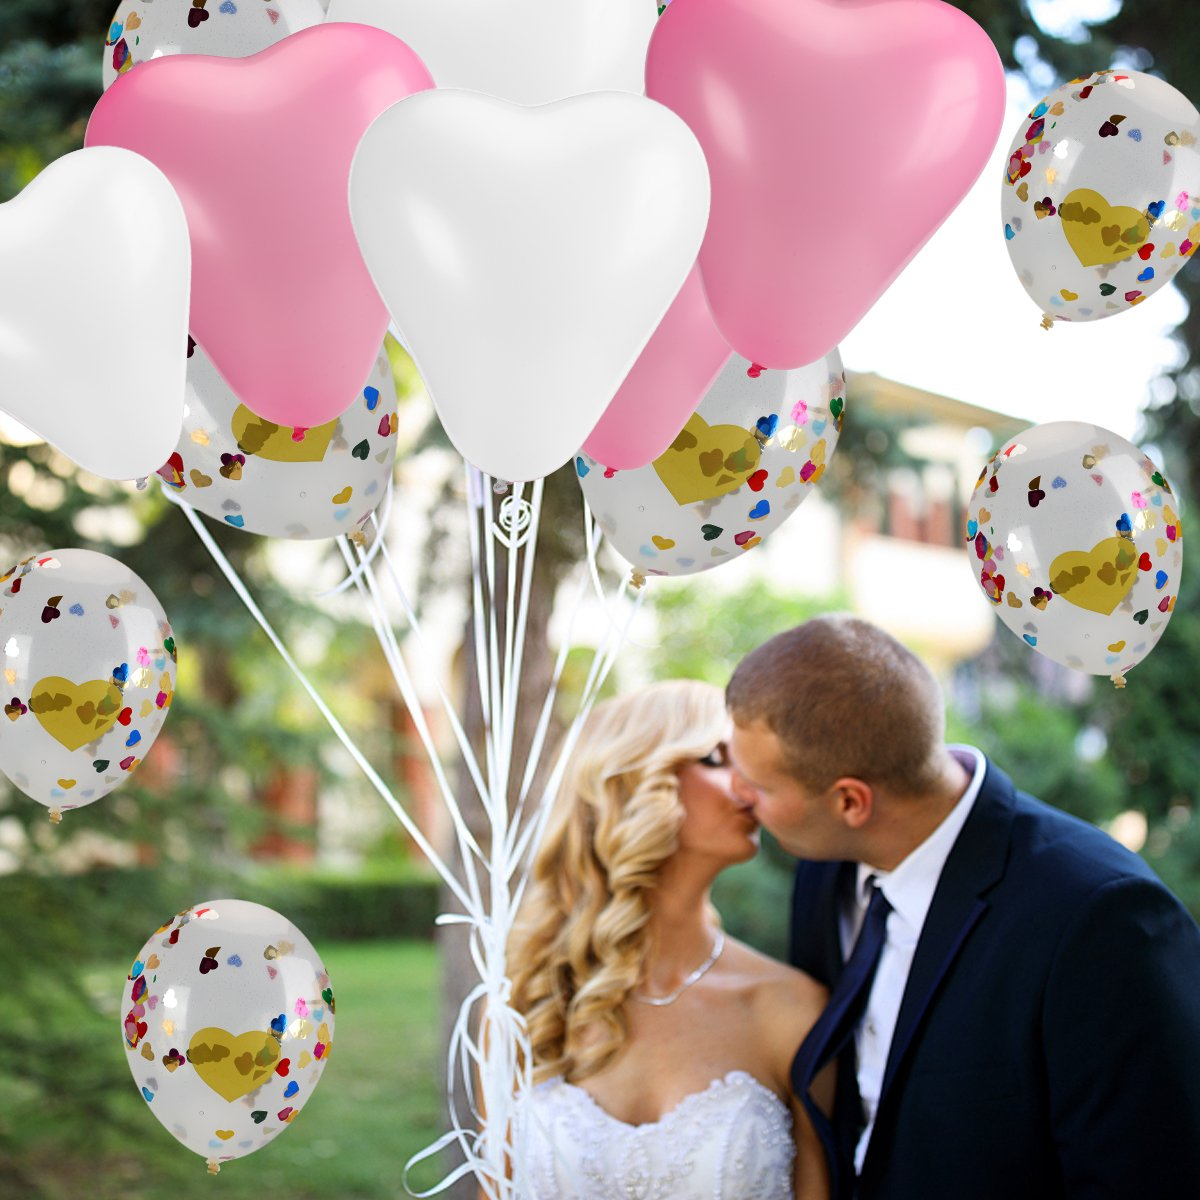 15 Pcs Heart Confetti Balloons with 30 Pcs 12 \'\' Pink and White Latex Heart Shape Party Balloons for Wedding Renewal Valentine\'s Bridal Shower Party Bachelorette Celebration Anniversary